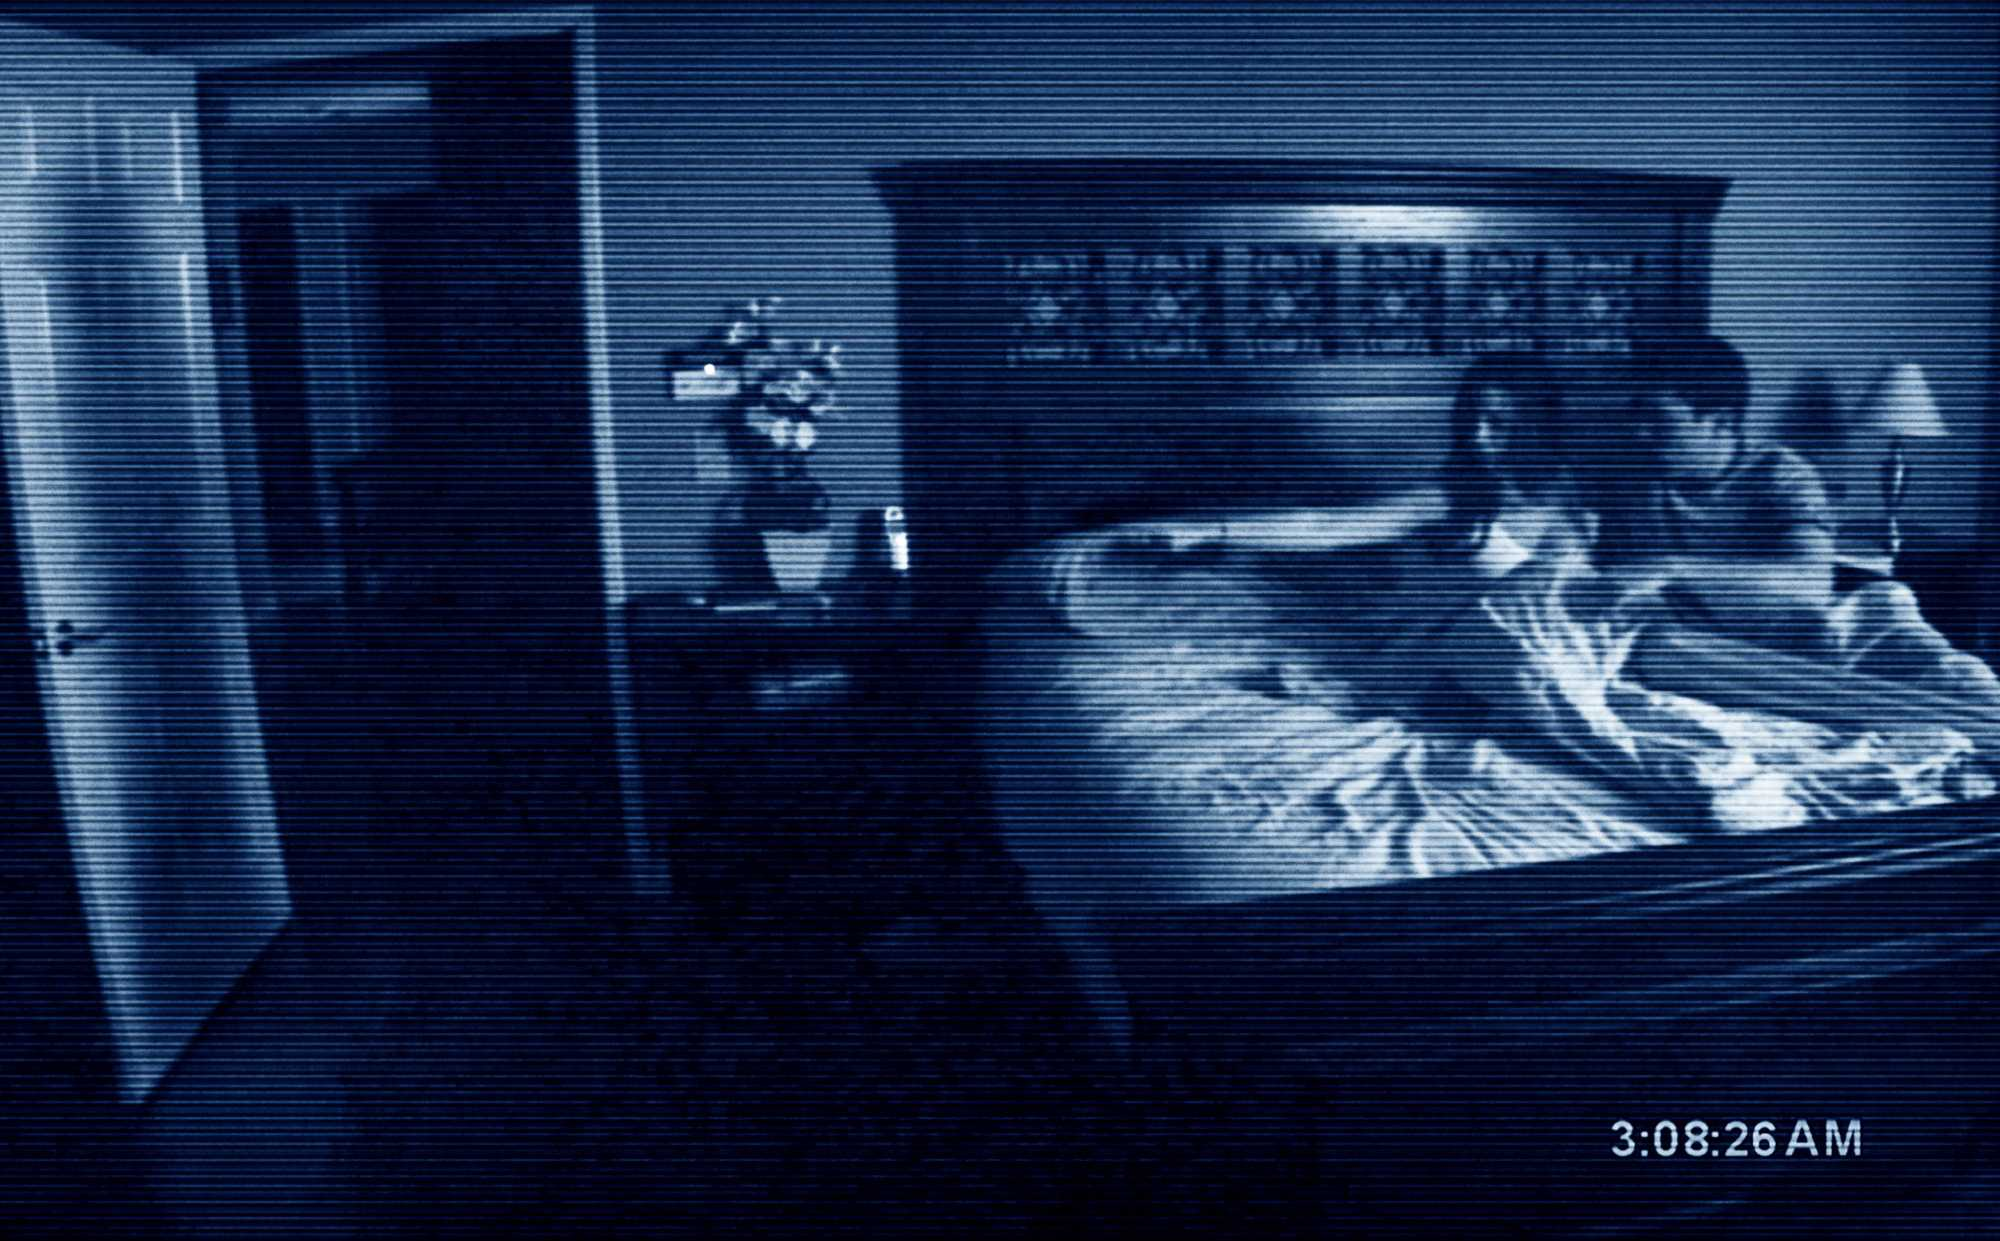 Paranormal Activity Getting Cousin Franchise Latino Bent - 2000 x 1241 jpeg 227kB